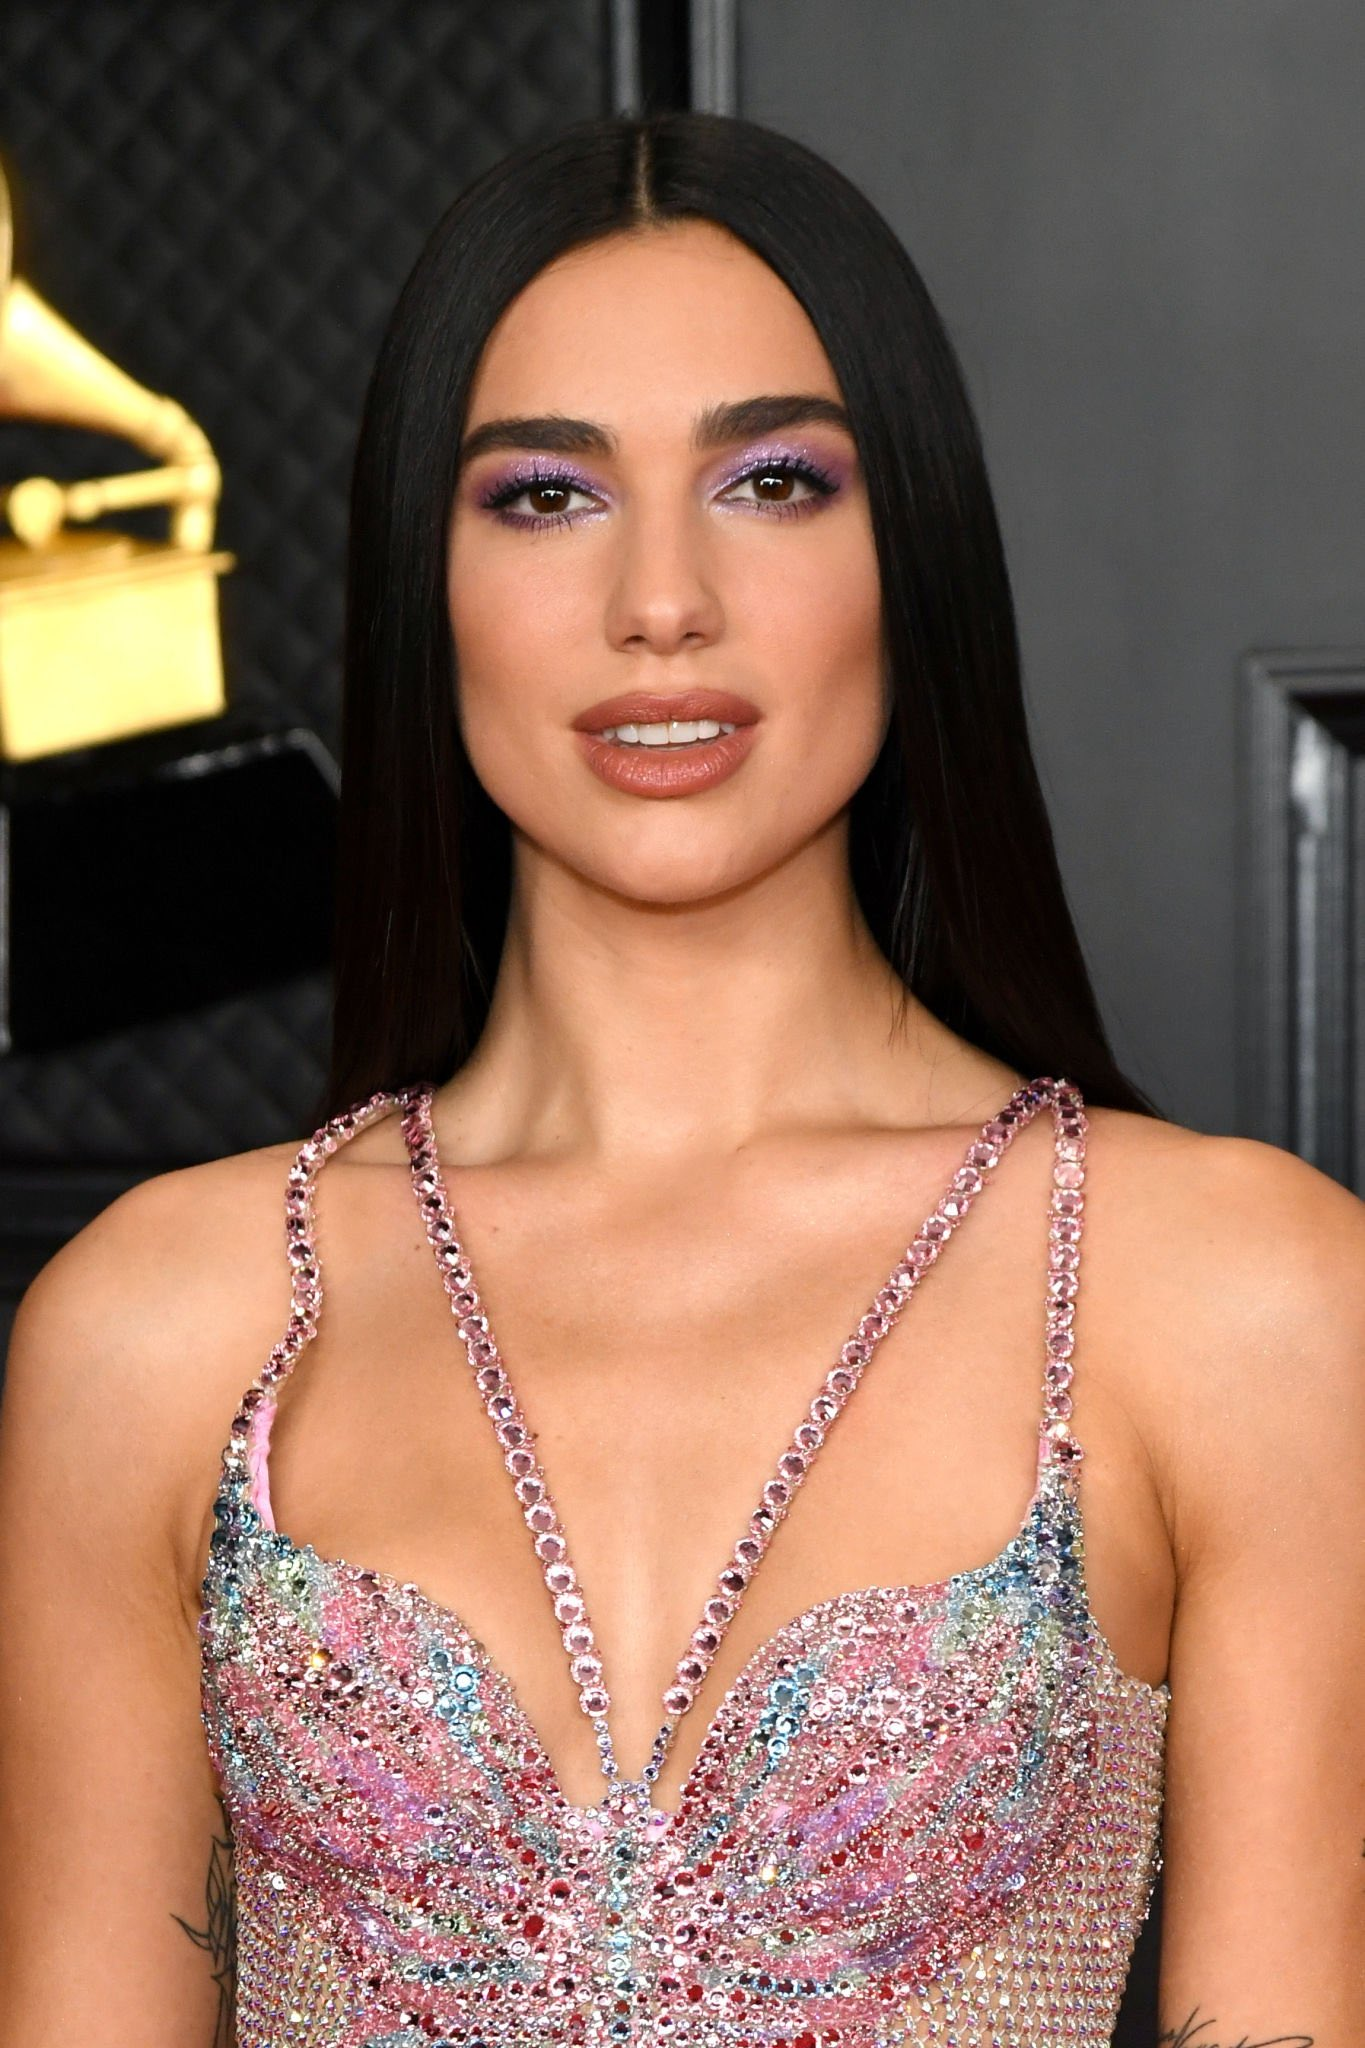 Sheer butterfly dress to bedazzled bikini set: Dua Lipa brings A-game to Grammys